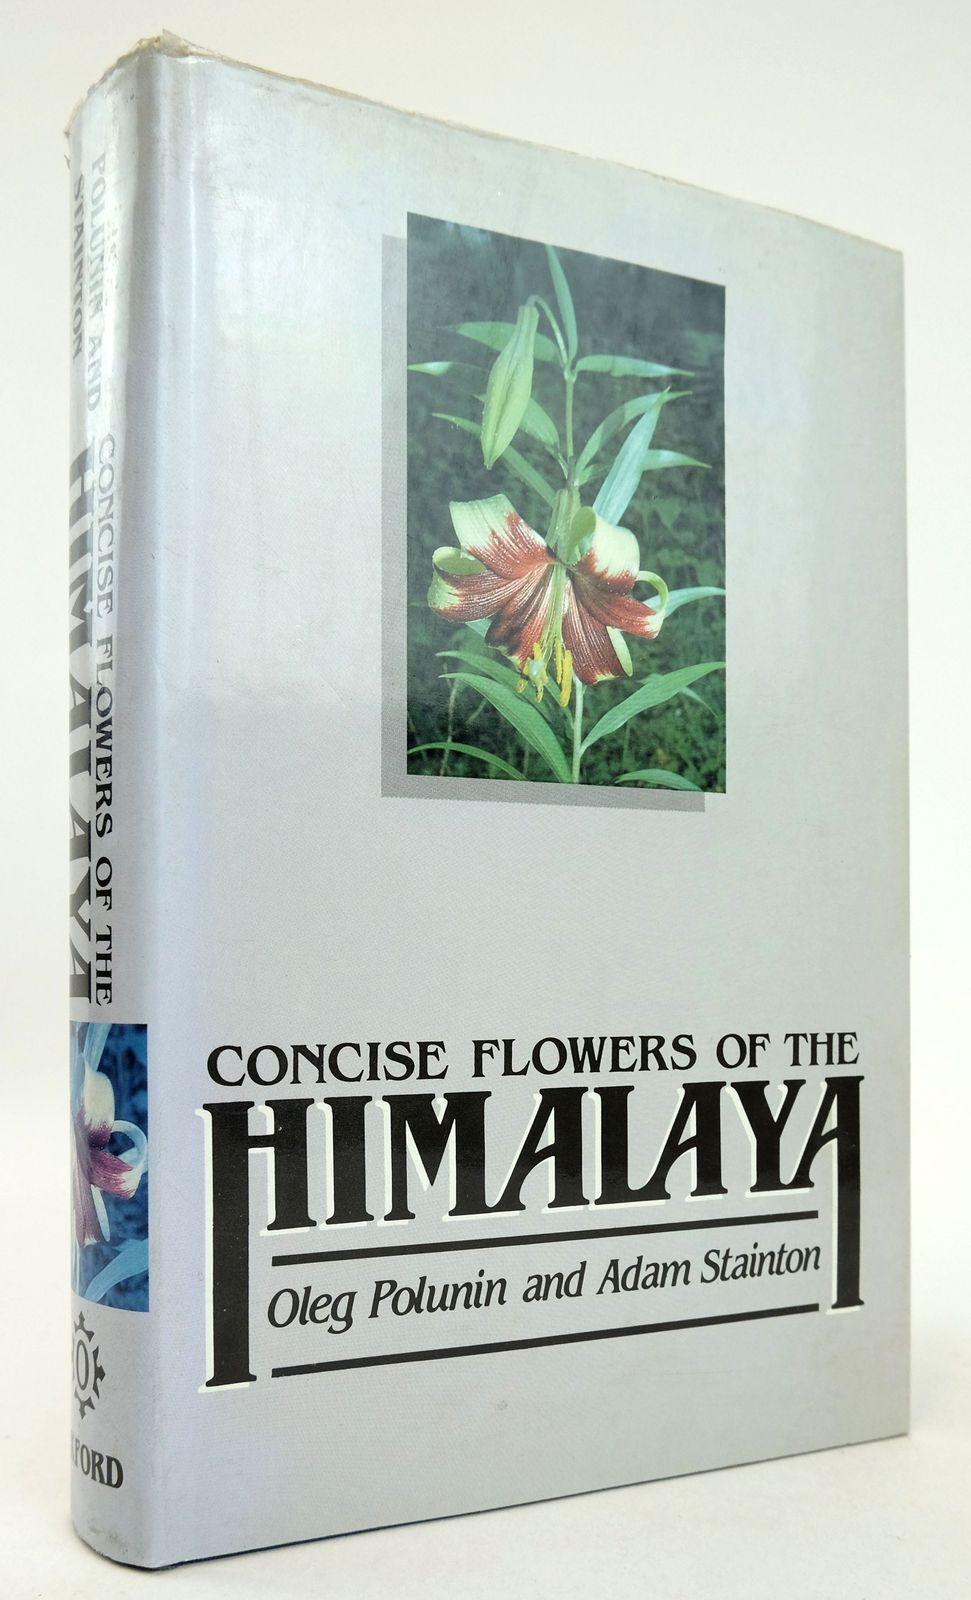 Photo of CONCISE FLOWERS OF THE HIMALAYA